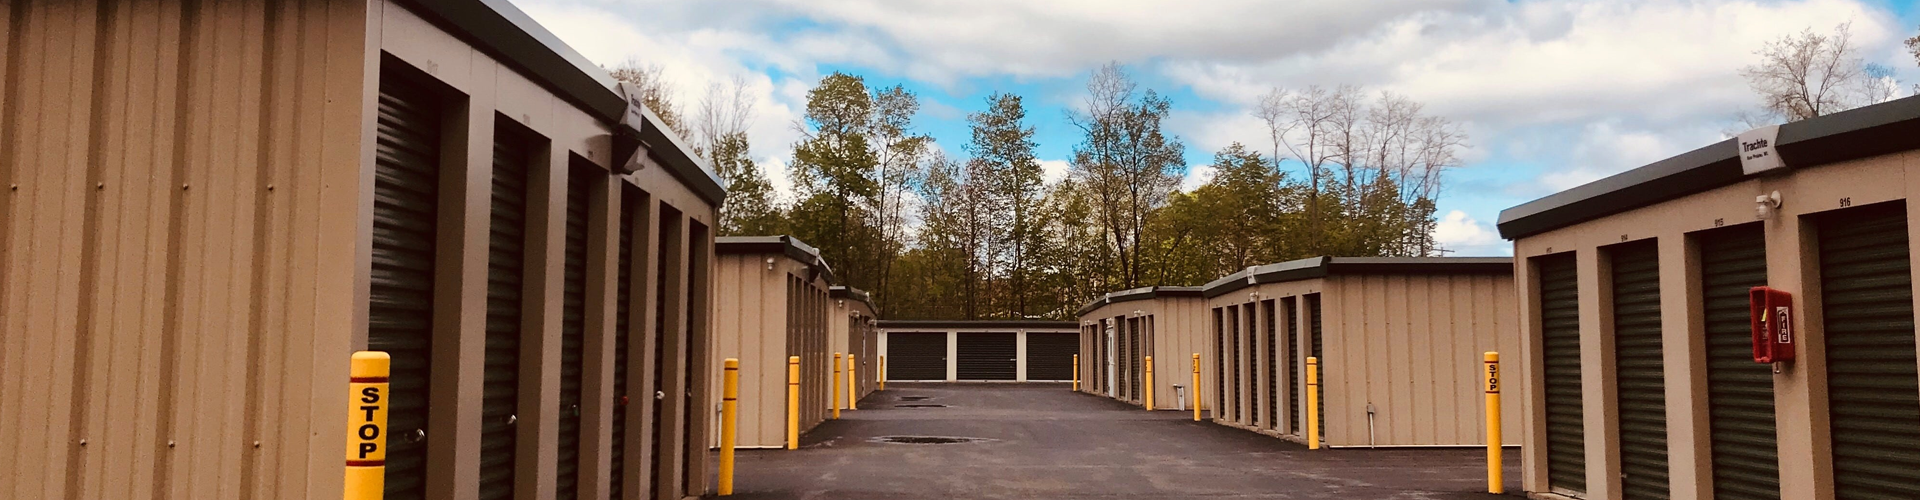 Storage Location in Ballston Spa NY